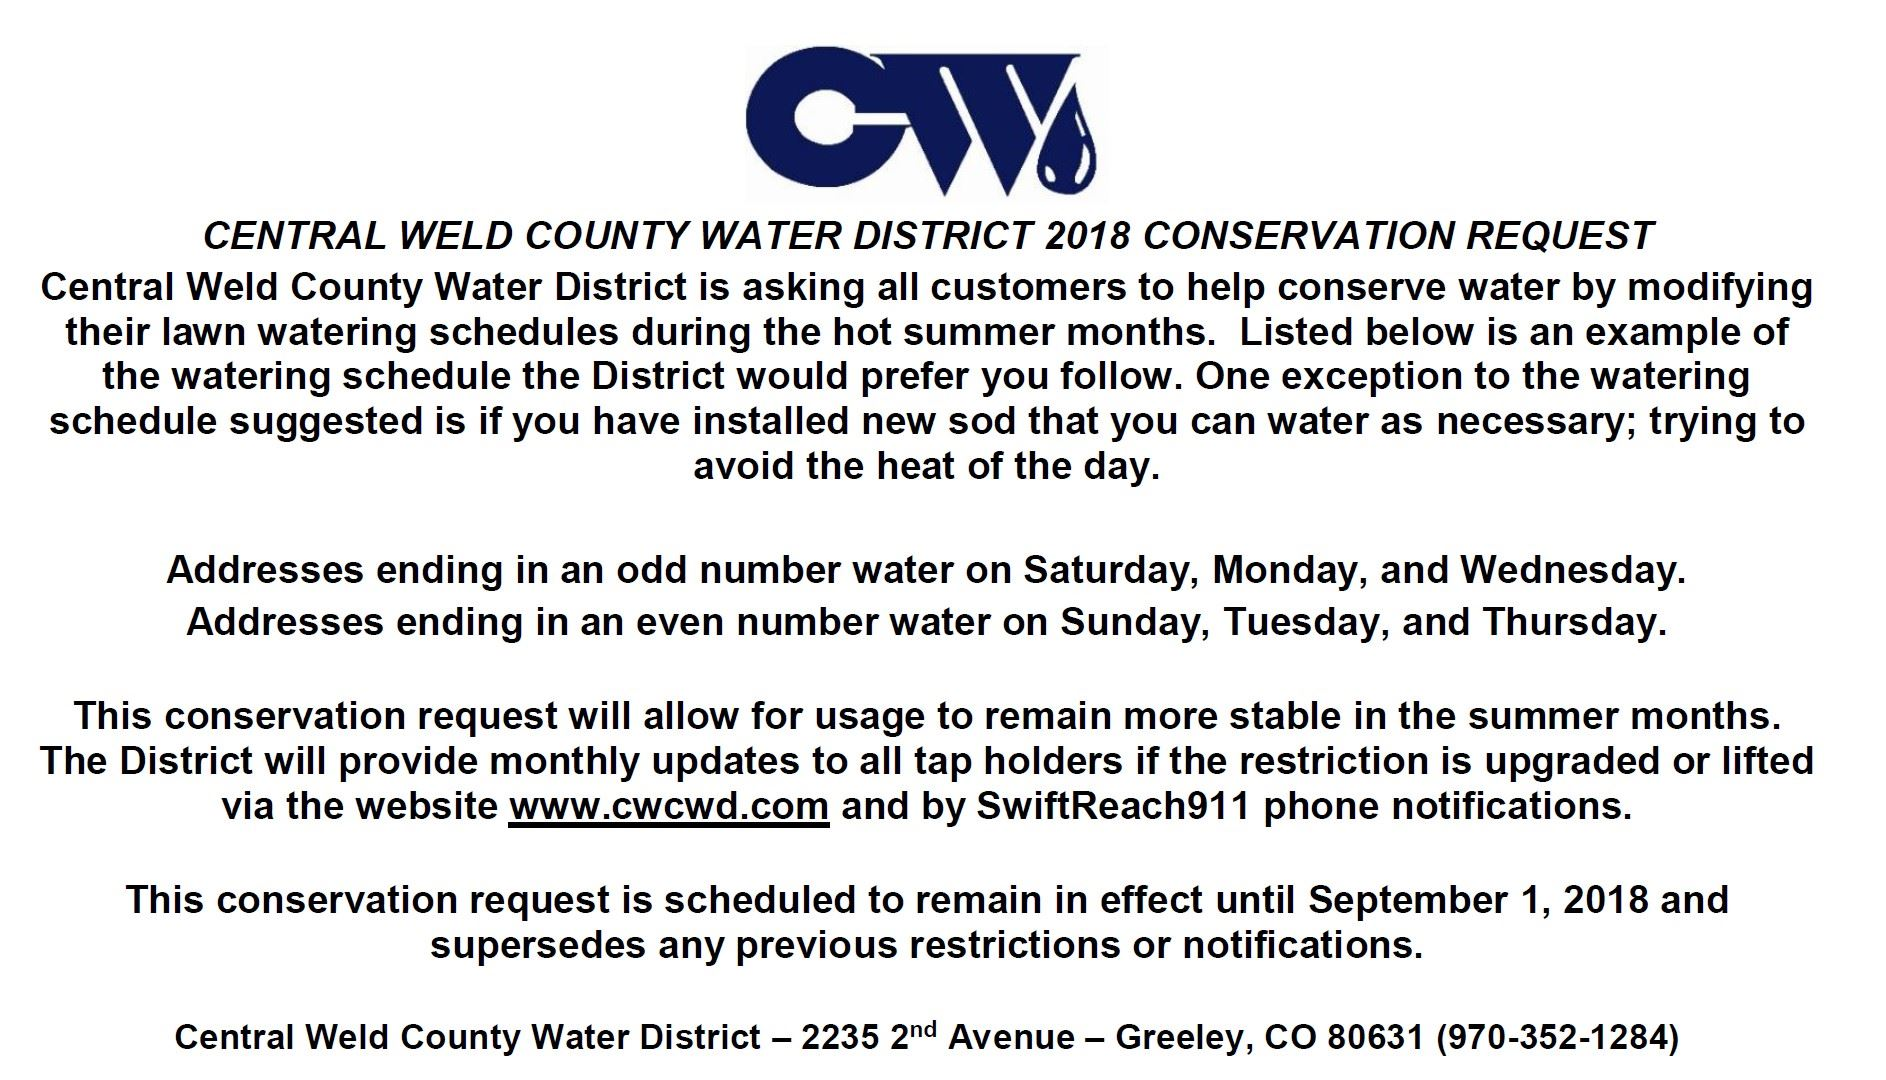 CWCWD 6-25-2018 Water Restriction Request